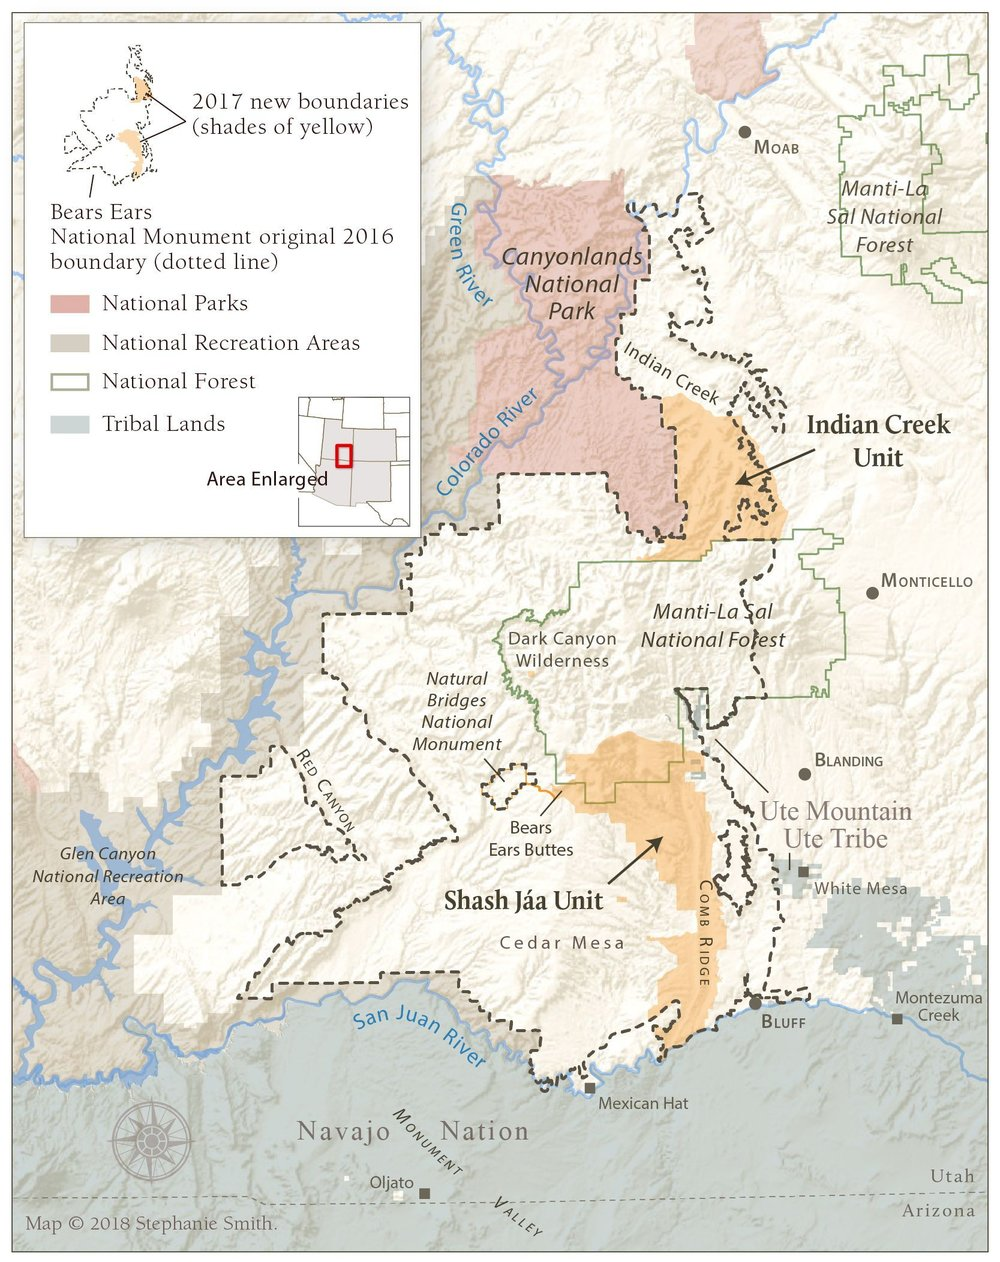 BearsEars_Proclamation_2018changes.jpg